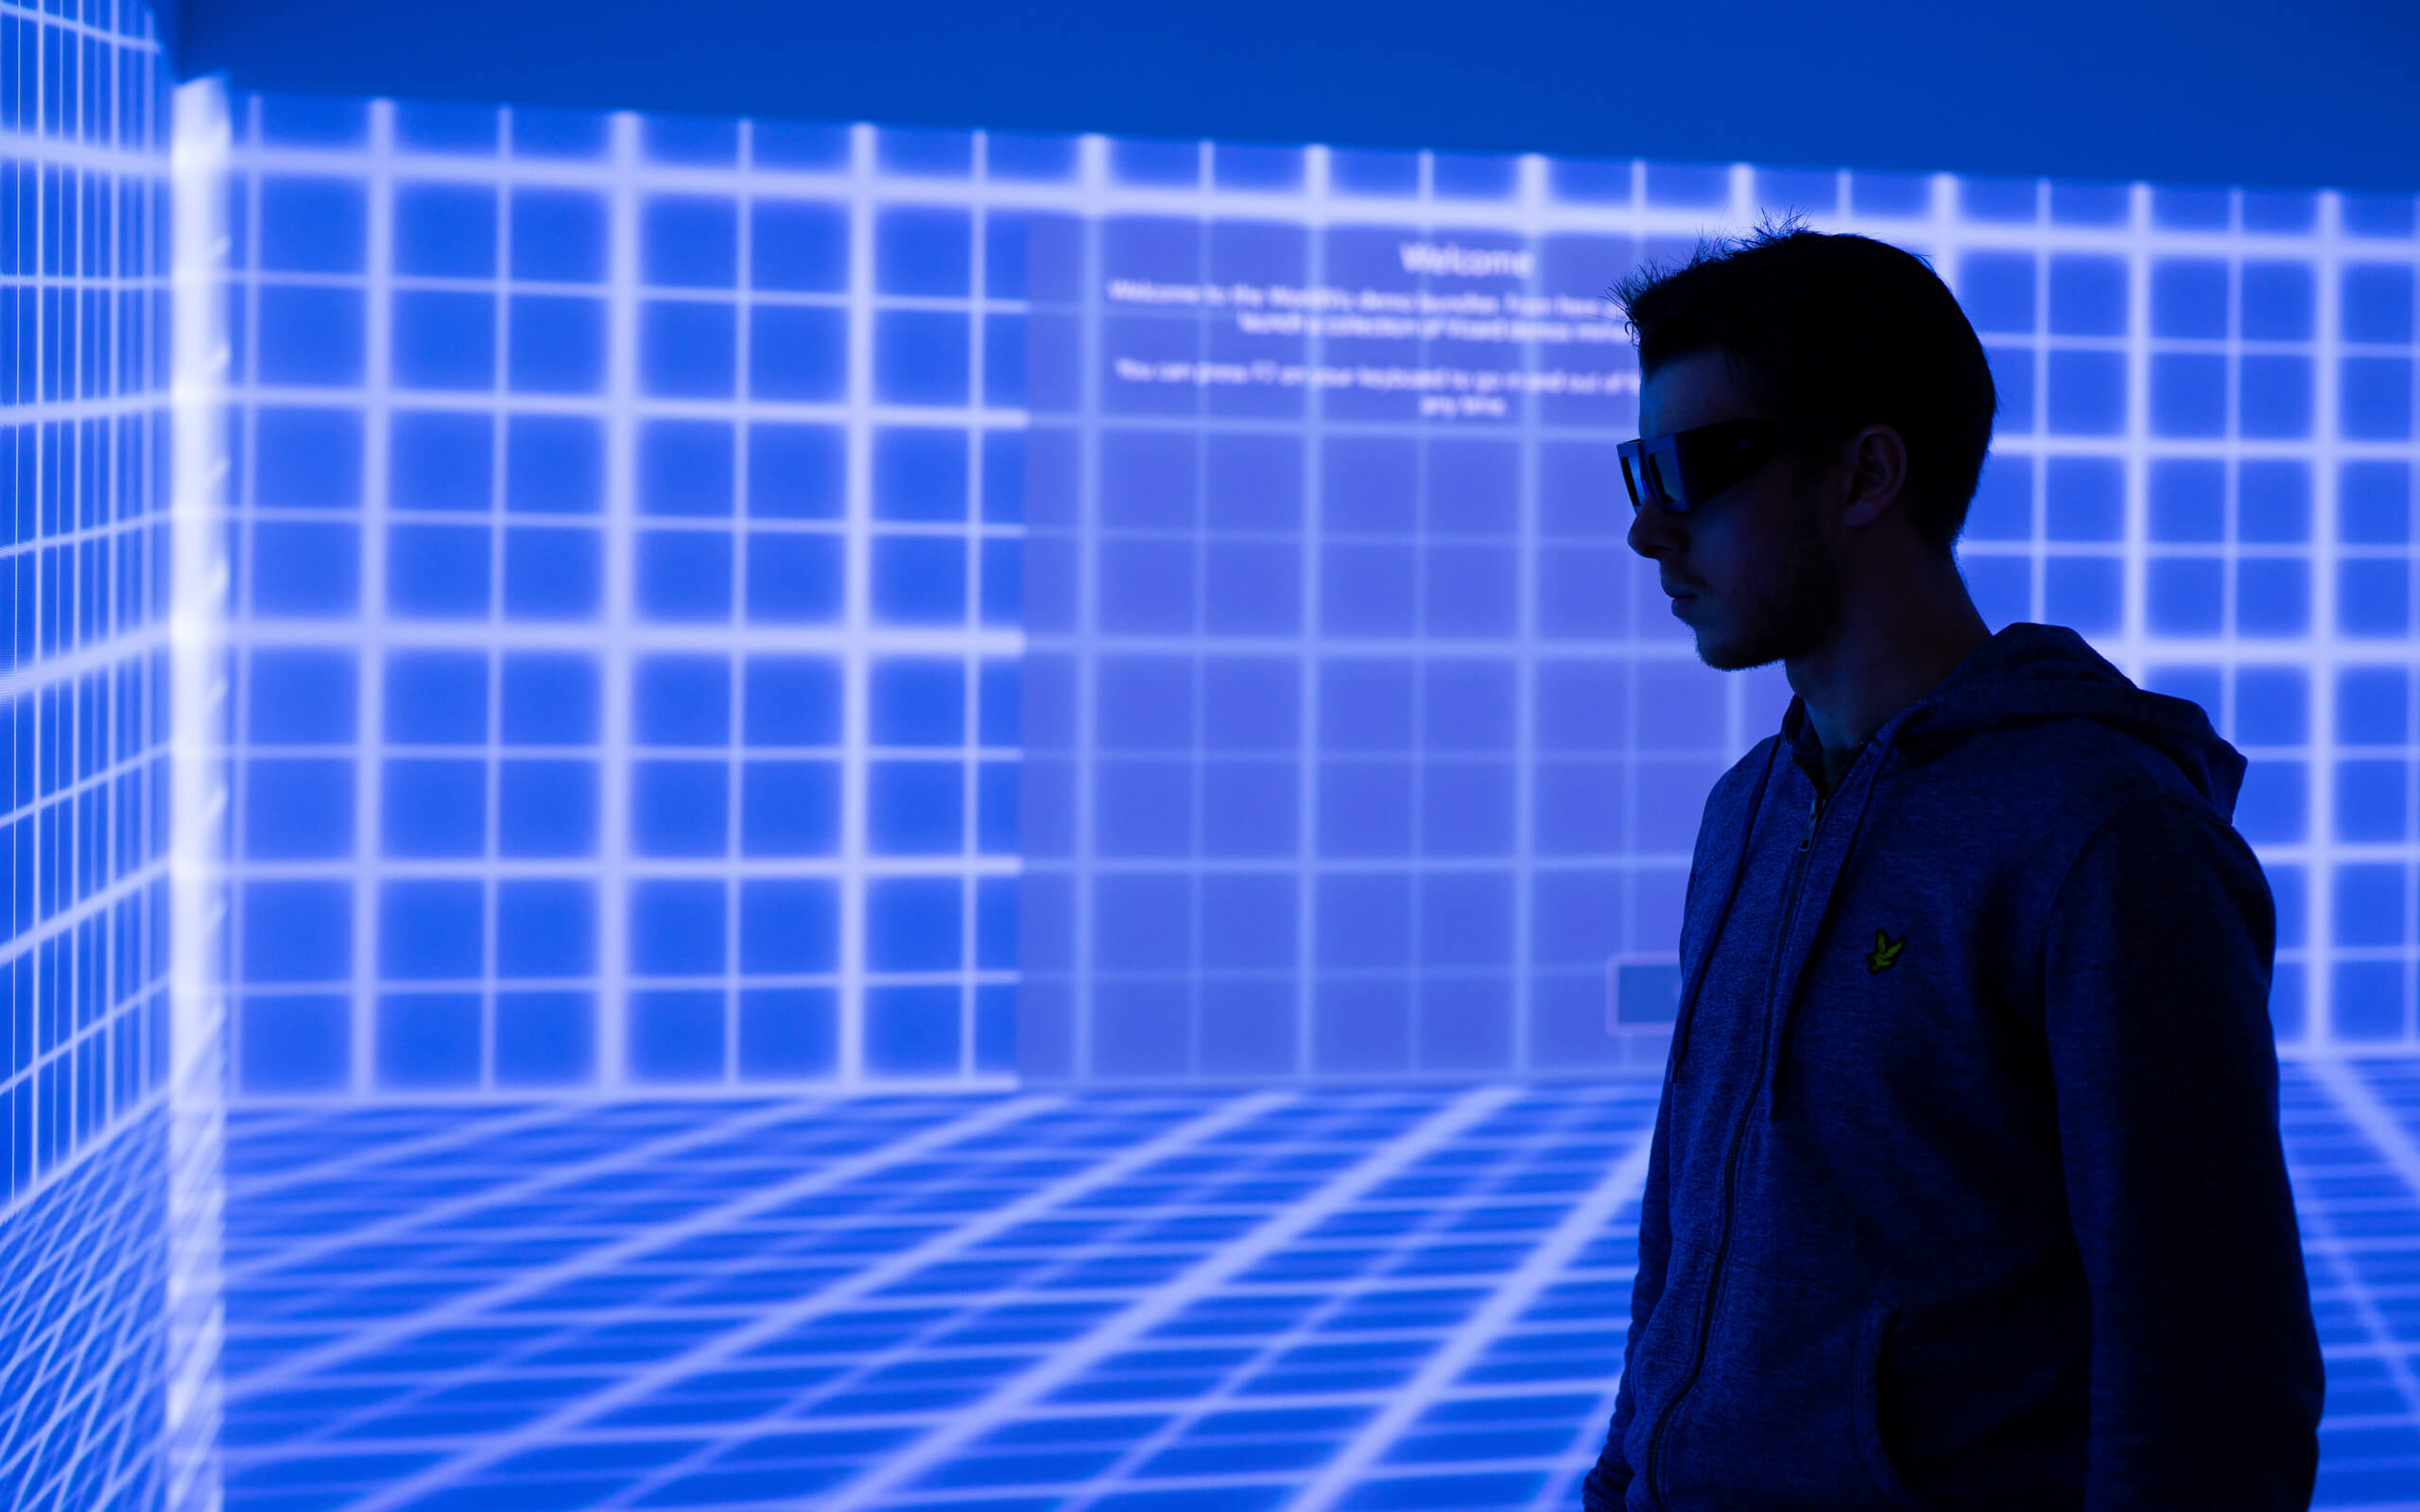 Silhouette of a student in the Data Cave at Markeaton Street.